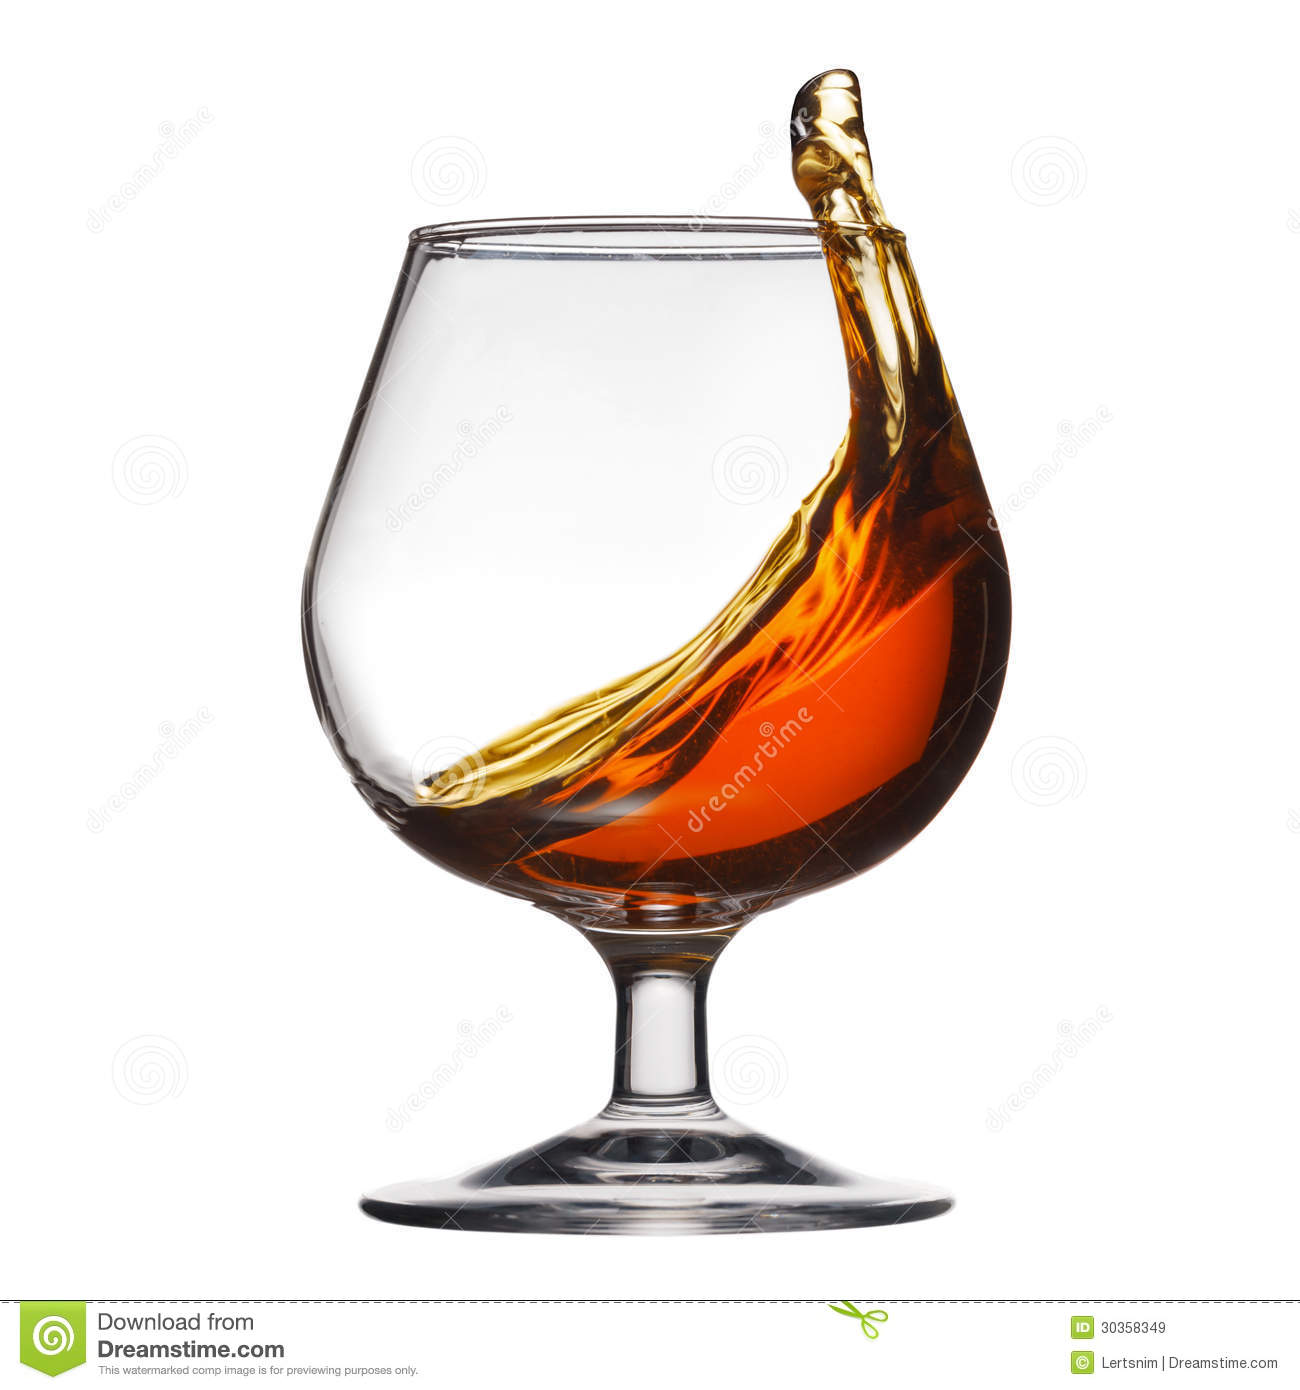 Glass Of Cognac. Royalty Free Stock Photo.